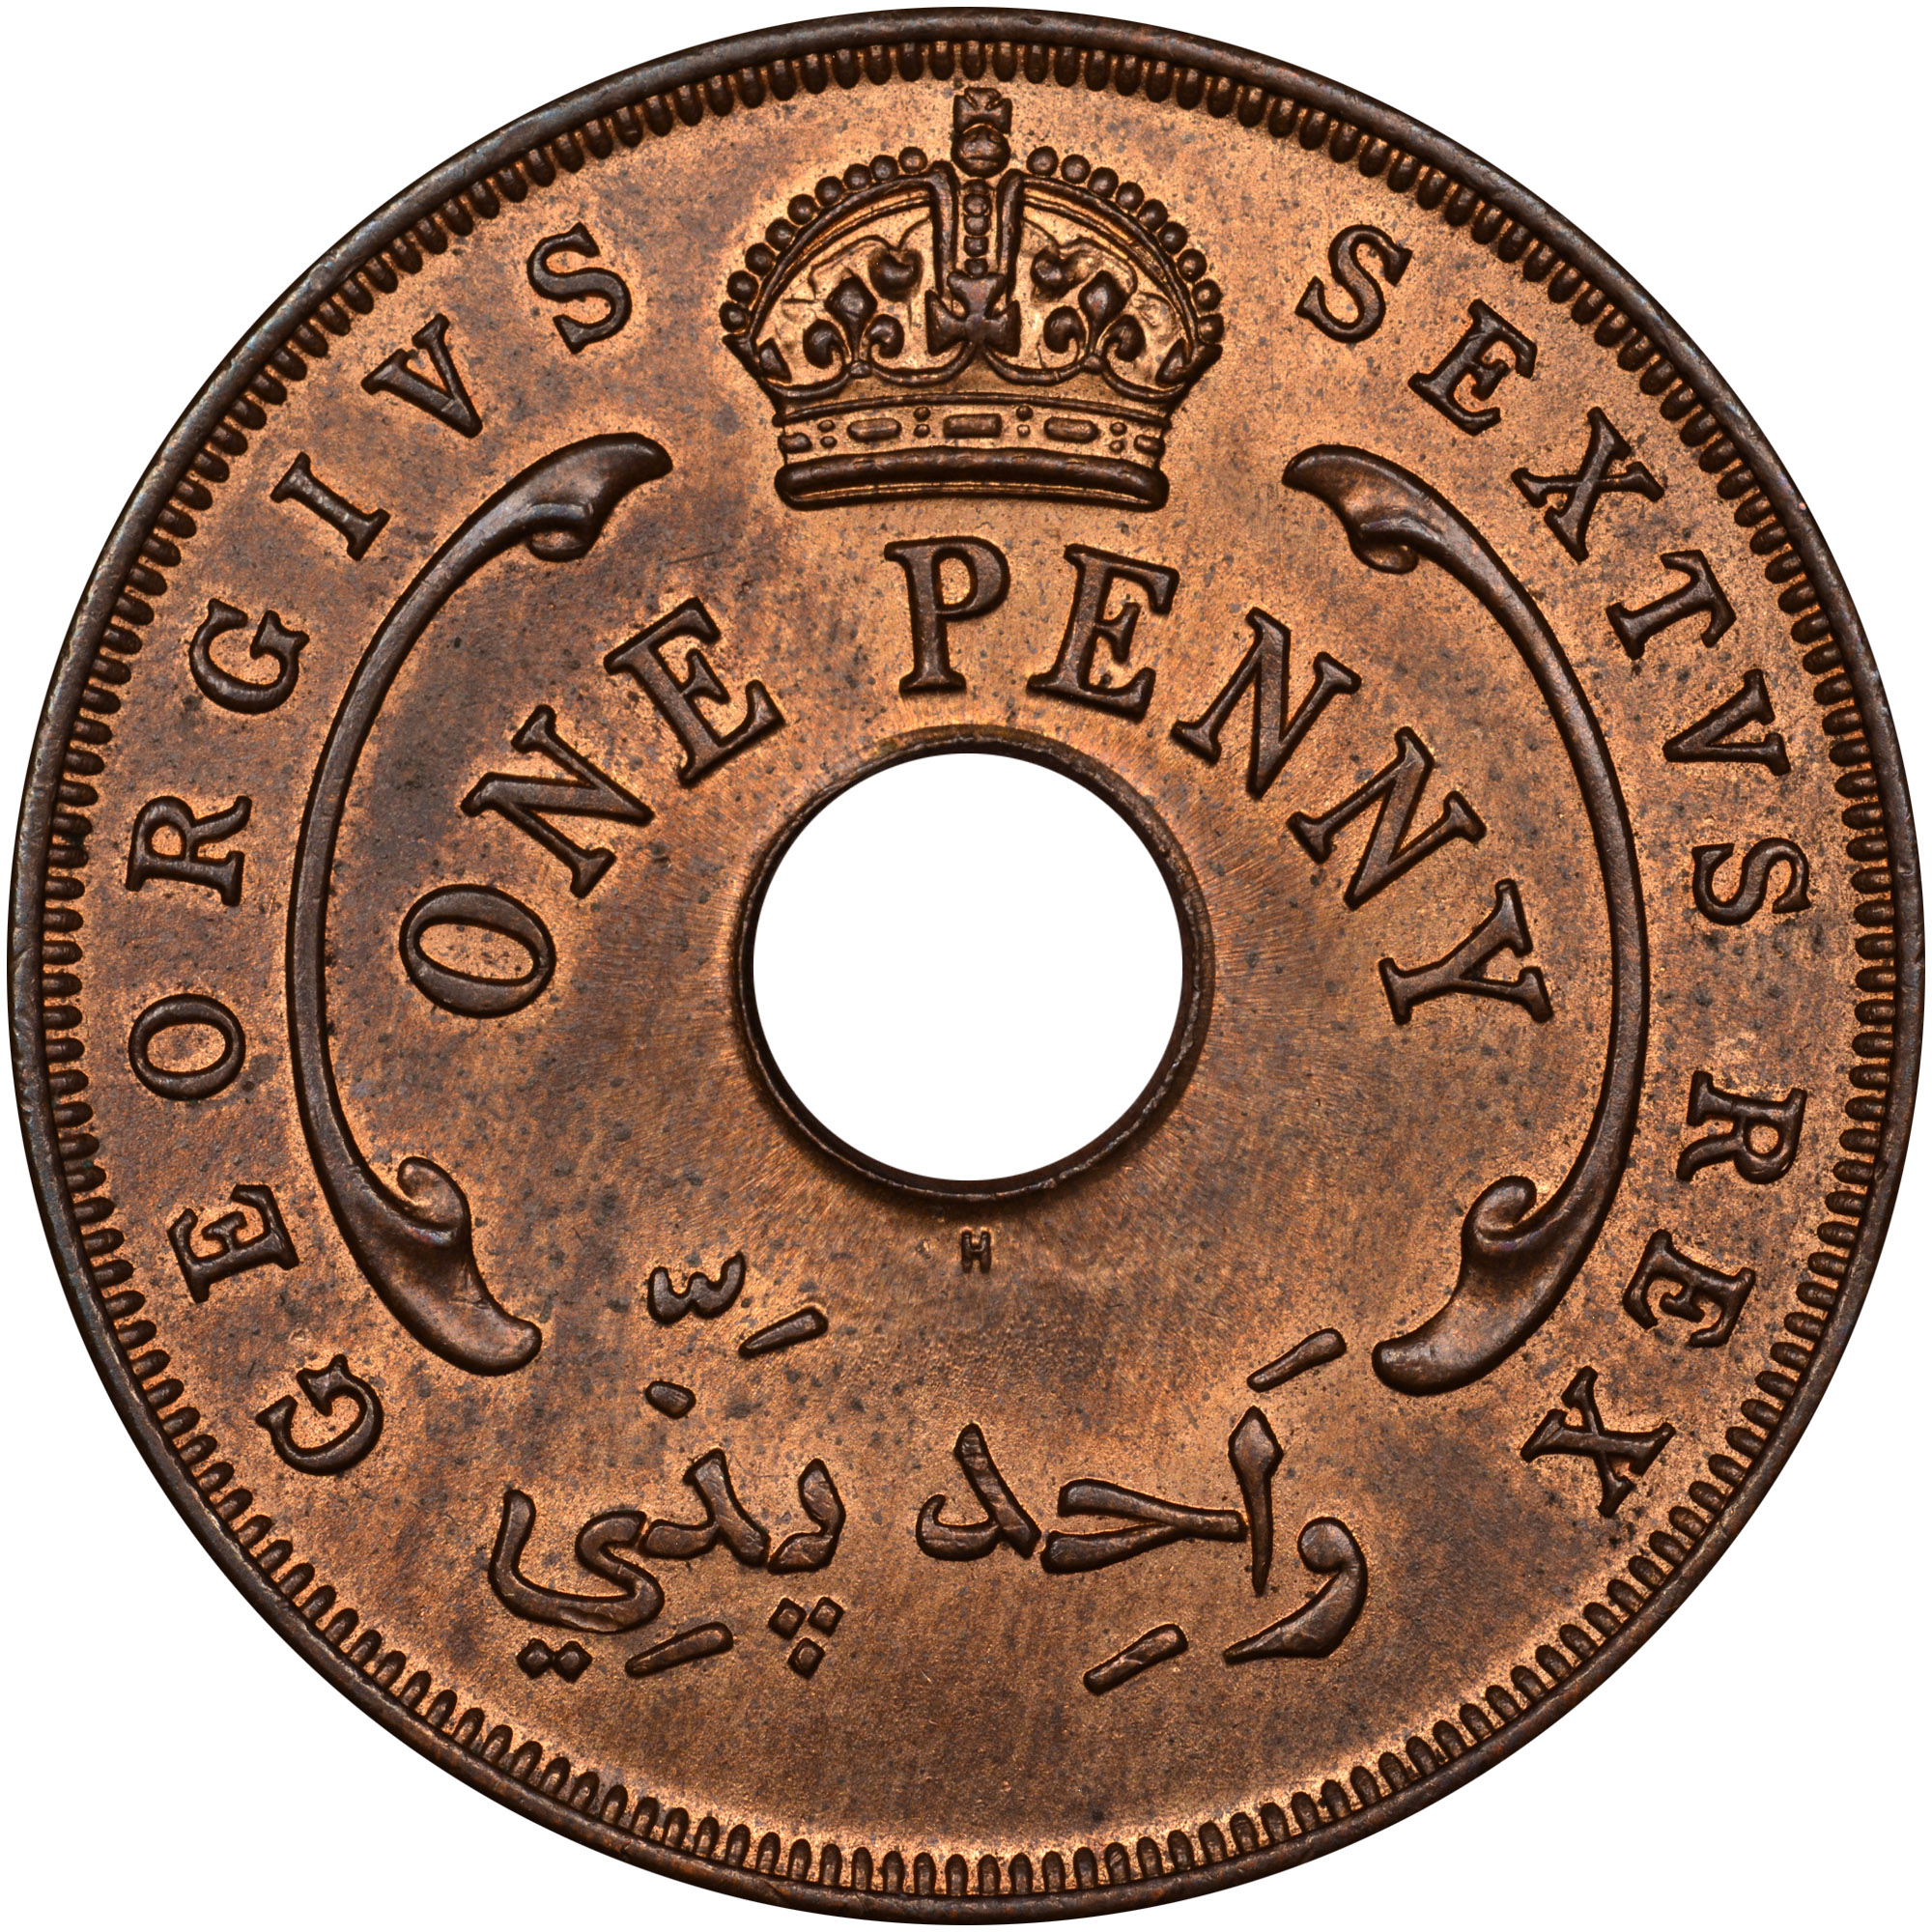 1956 British West Africa Penny obverse